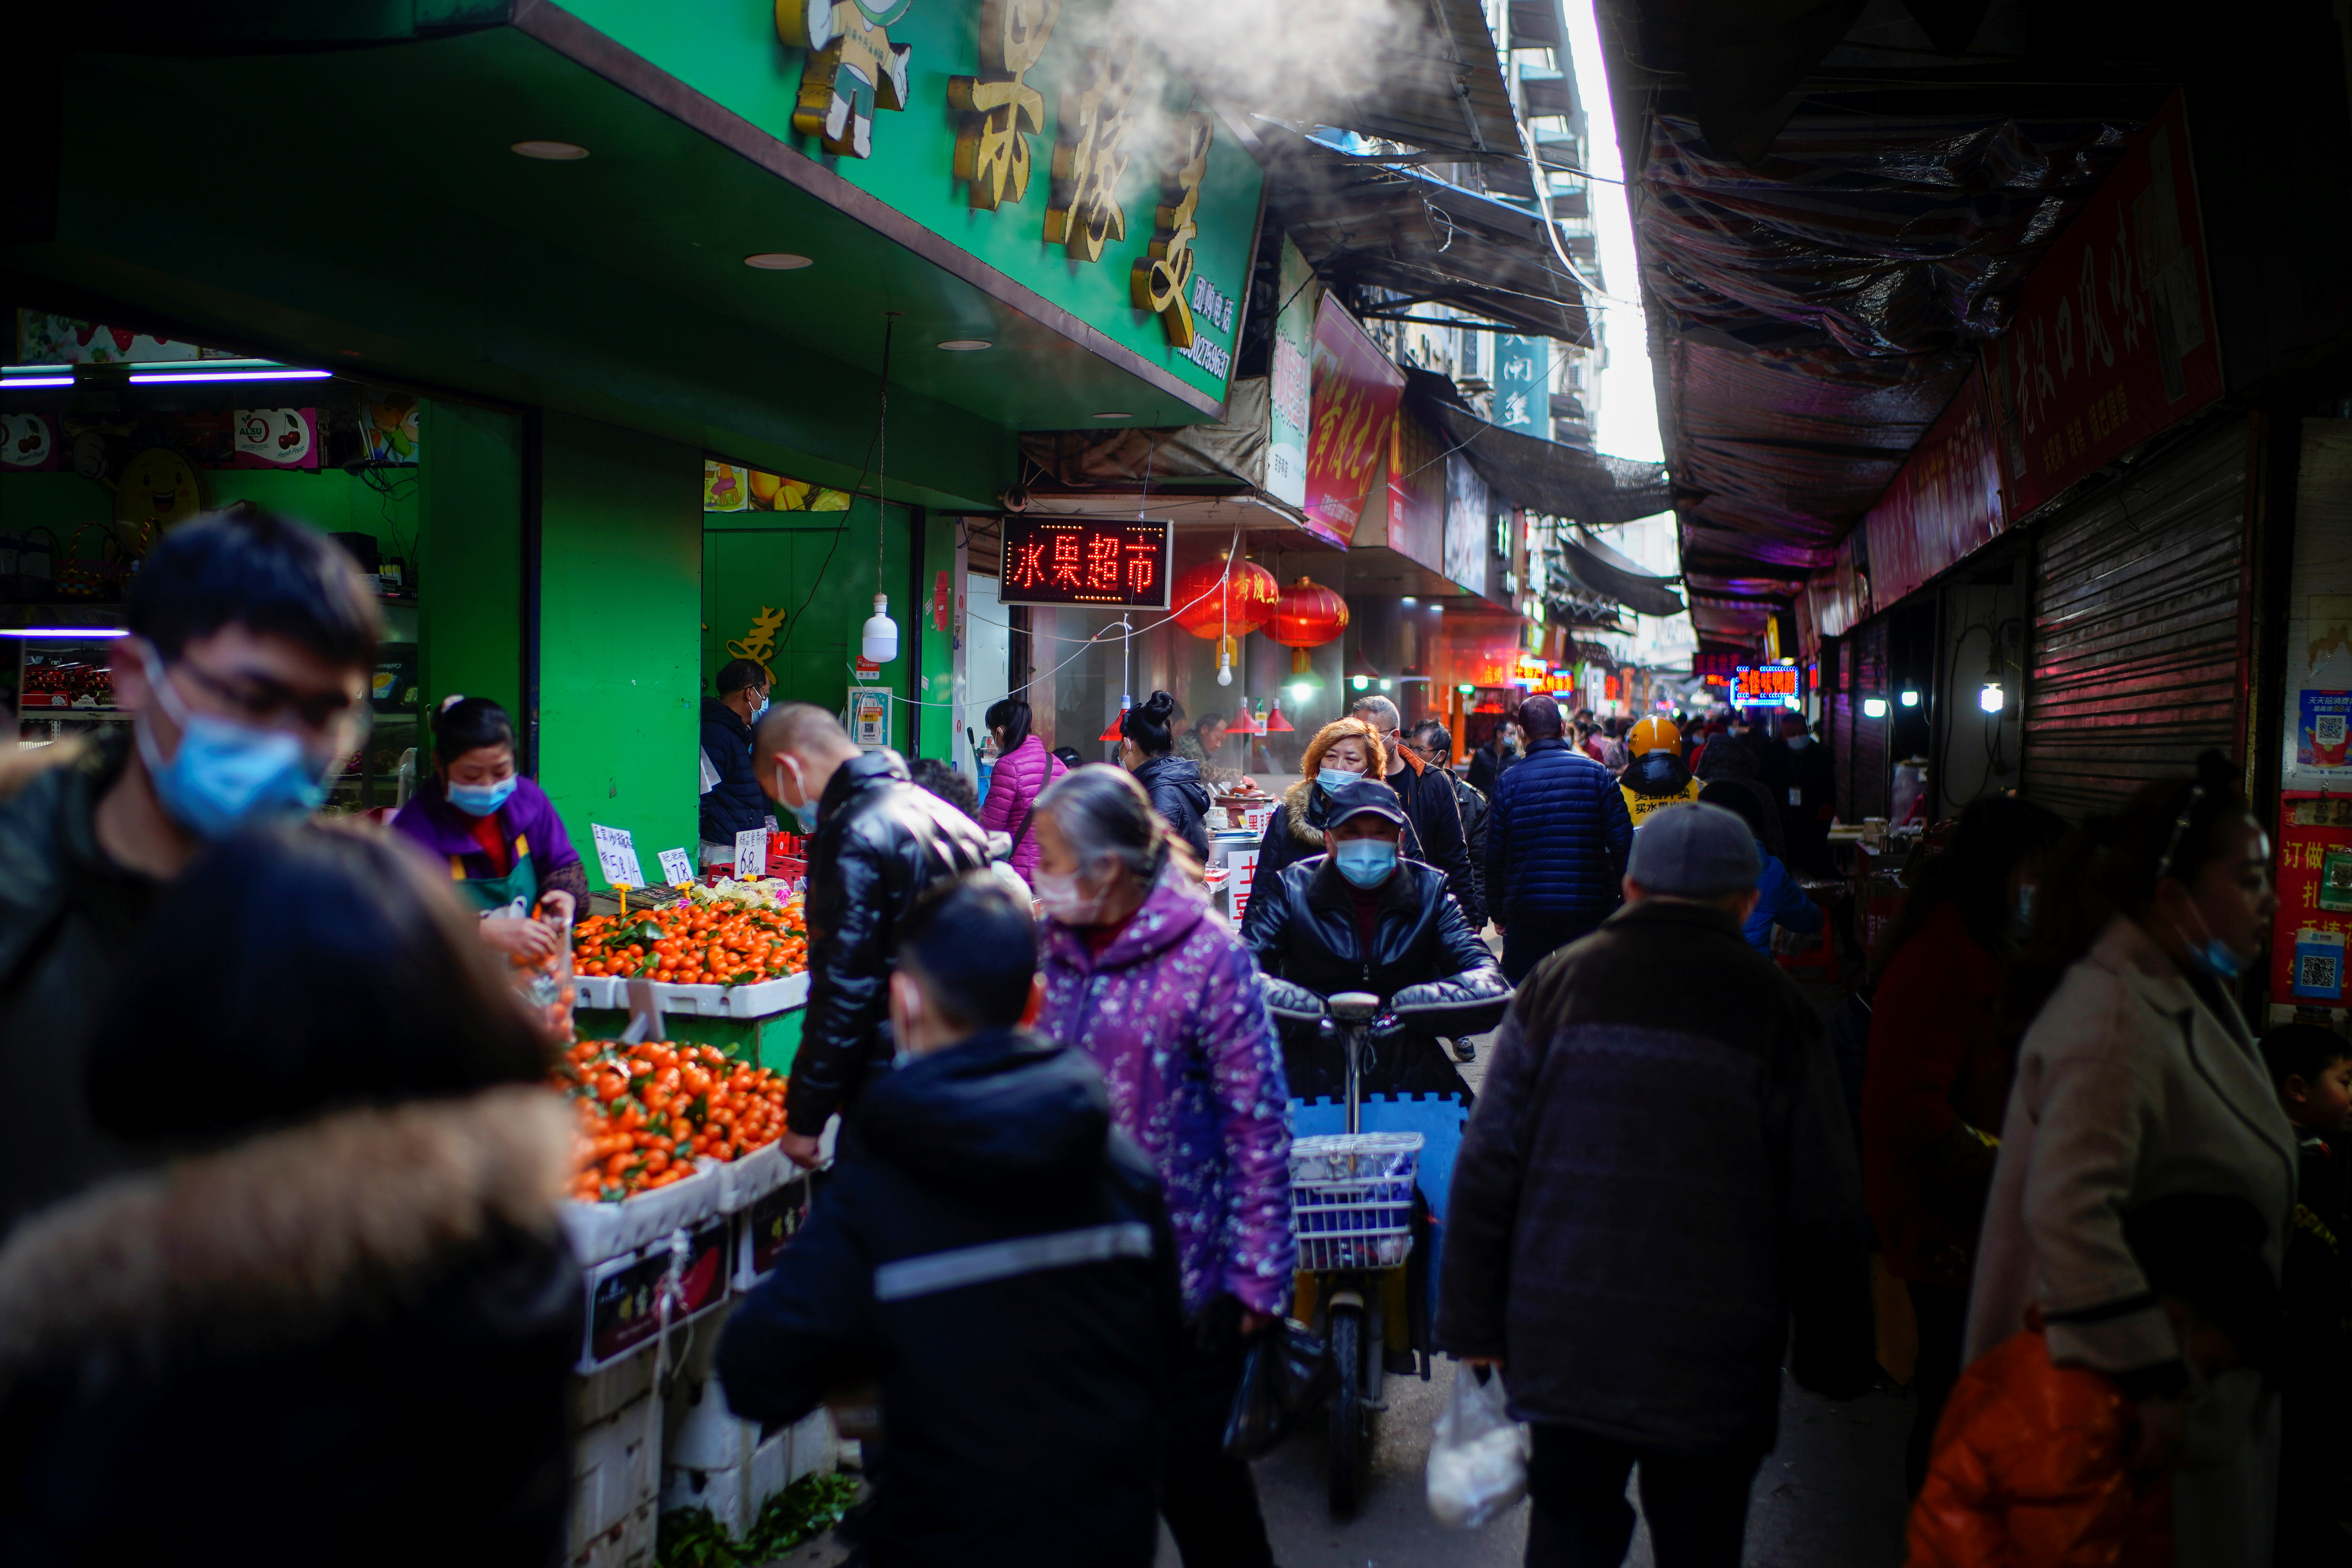 People wearing face masks walk on a street market, following an outbreak of the coronavirus disease (COVID-19) in Wuhan, Hubei province, China February 8, 2021. REUTERS/Aly Song